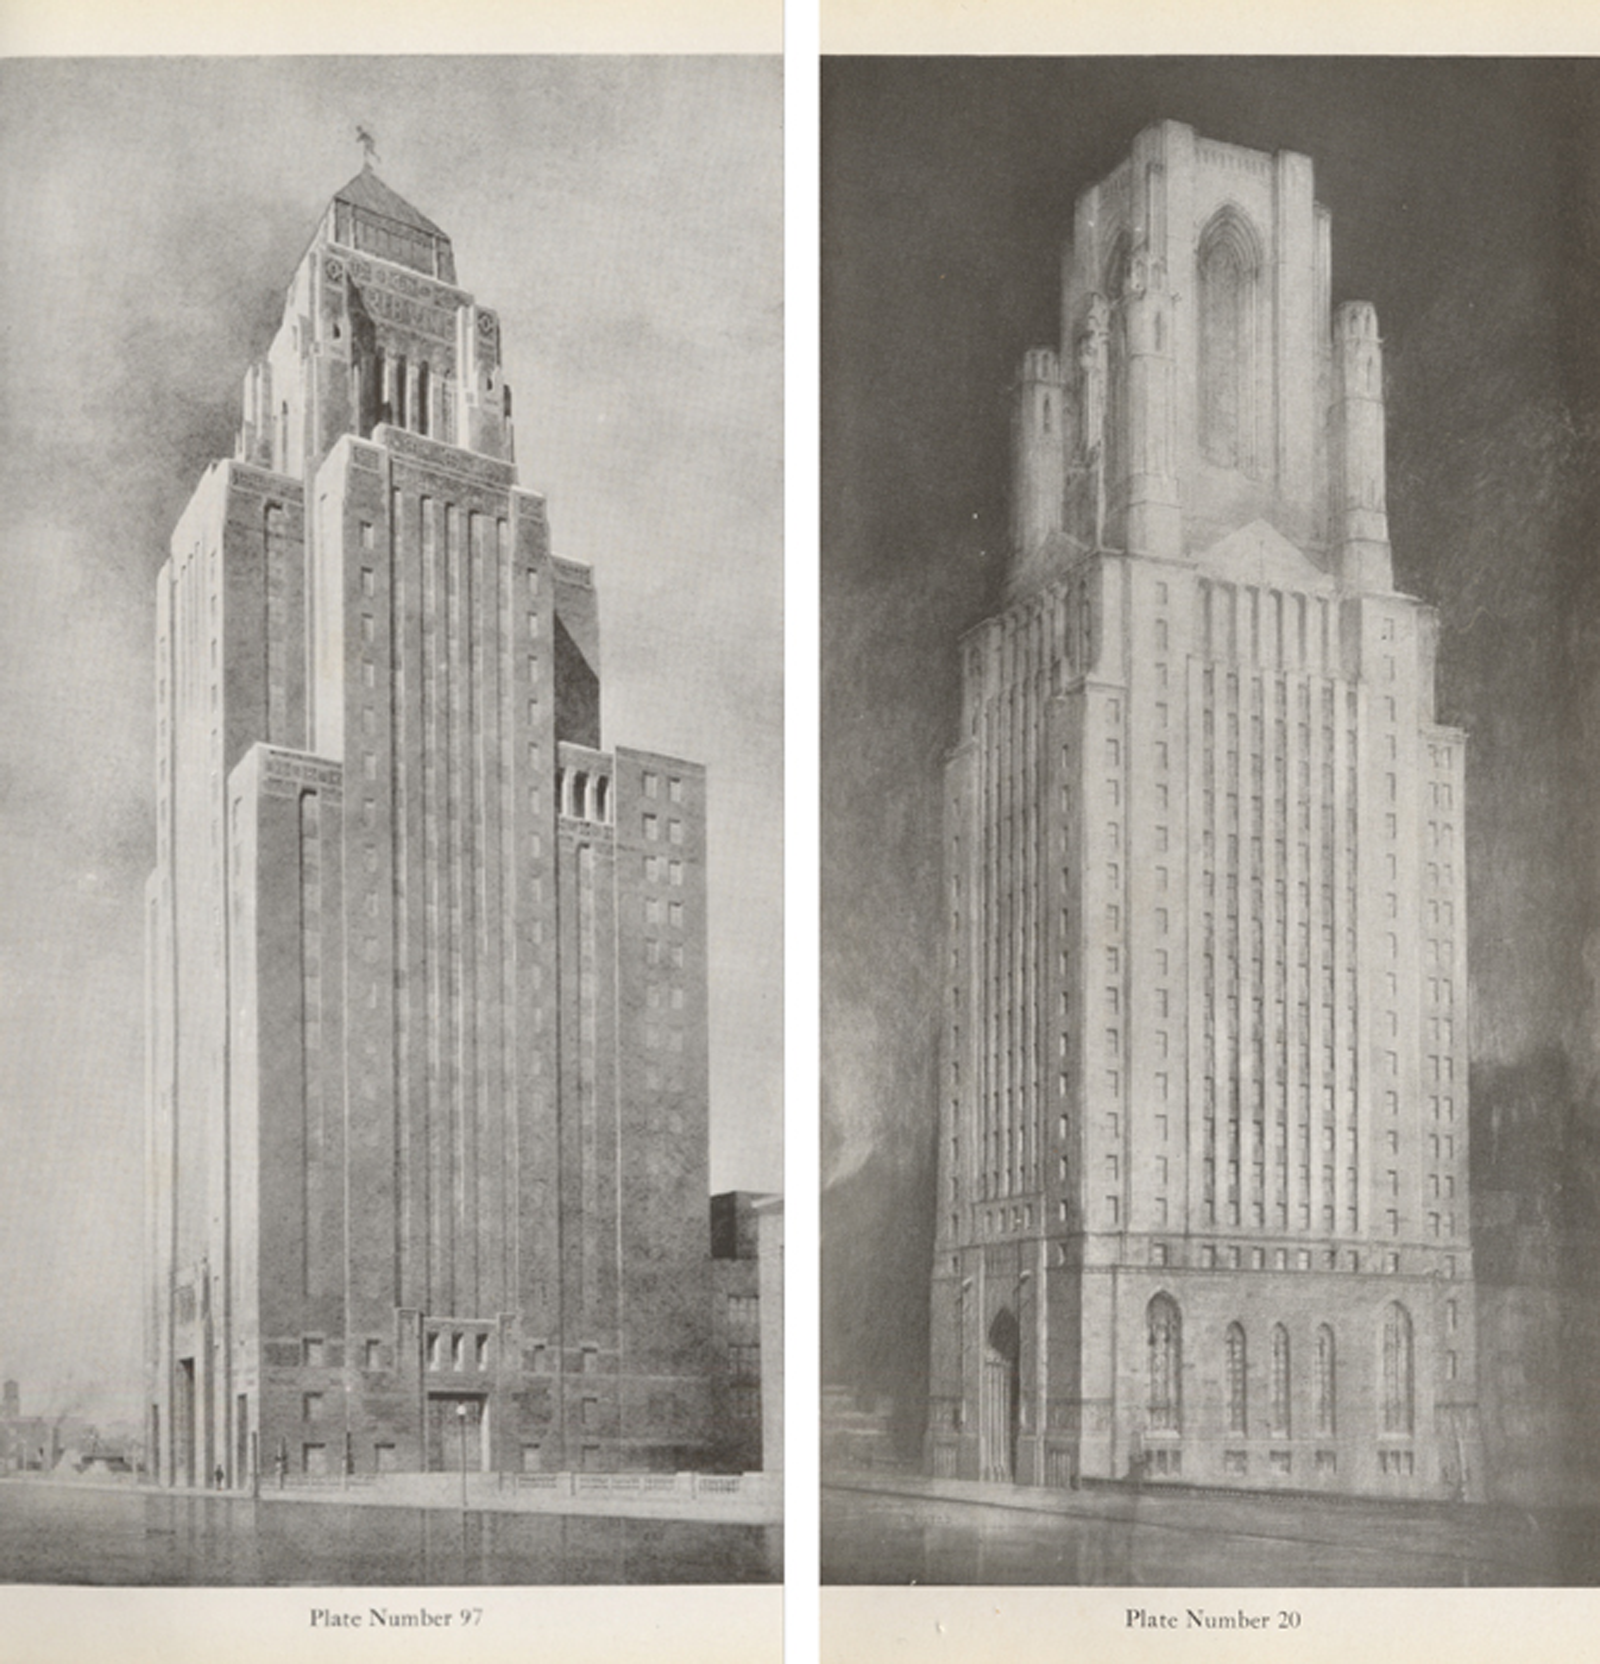 Plate 97: Bertram Goodhue (NYC) Plate 20: Third Prize, Holabird & Roche (Chicago)